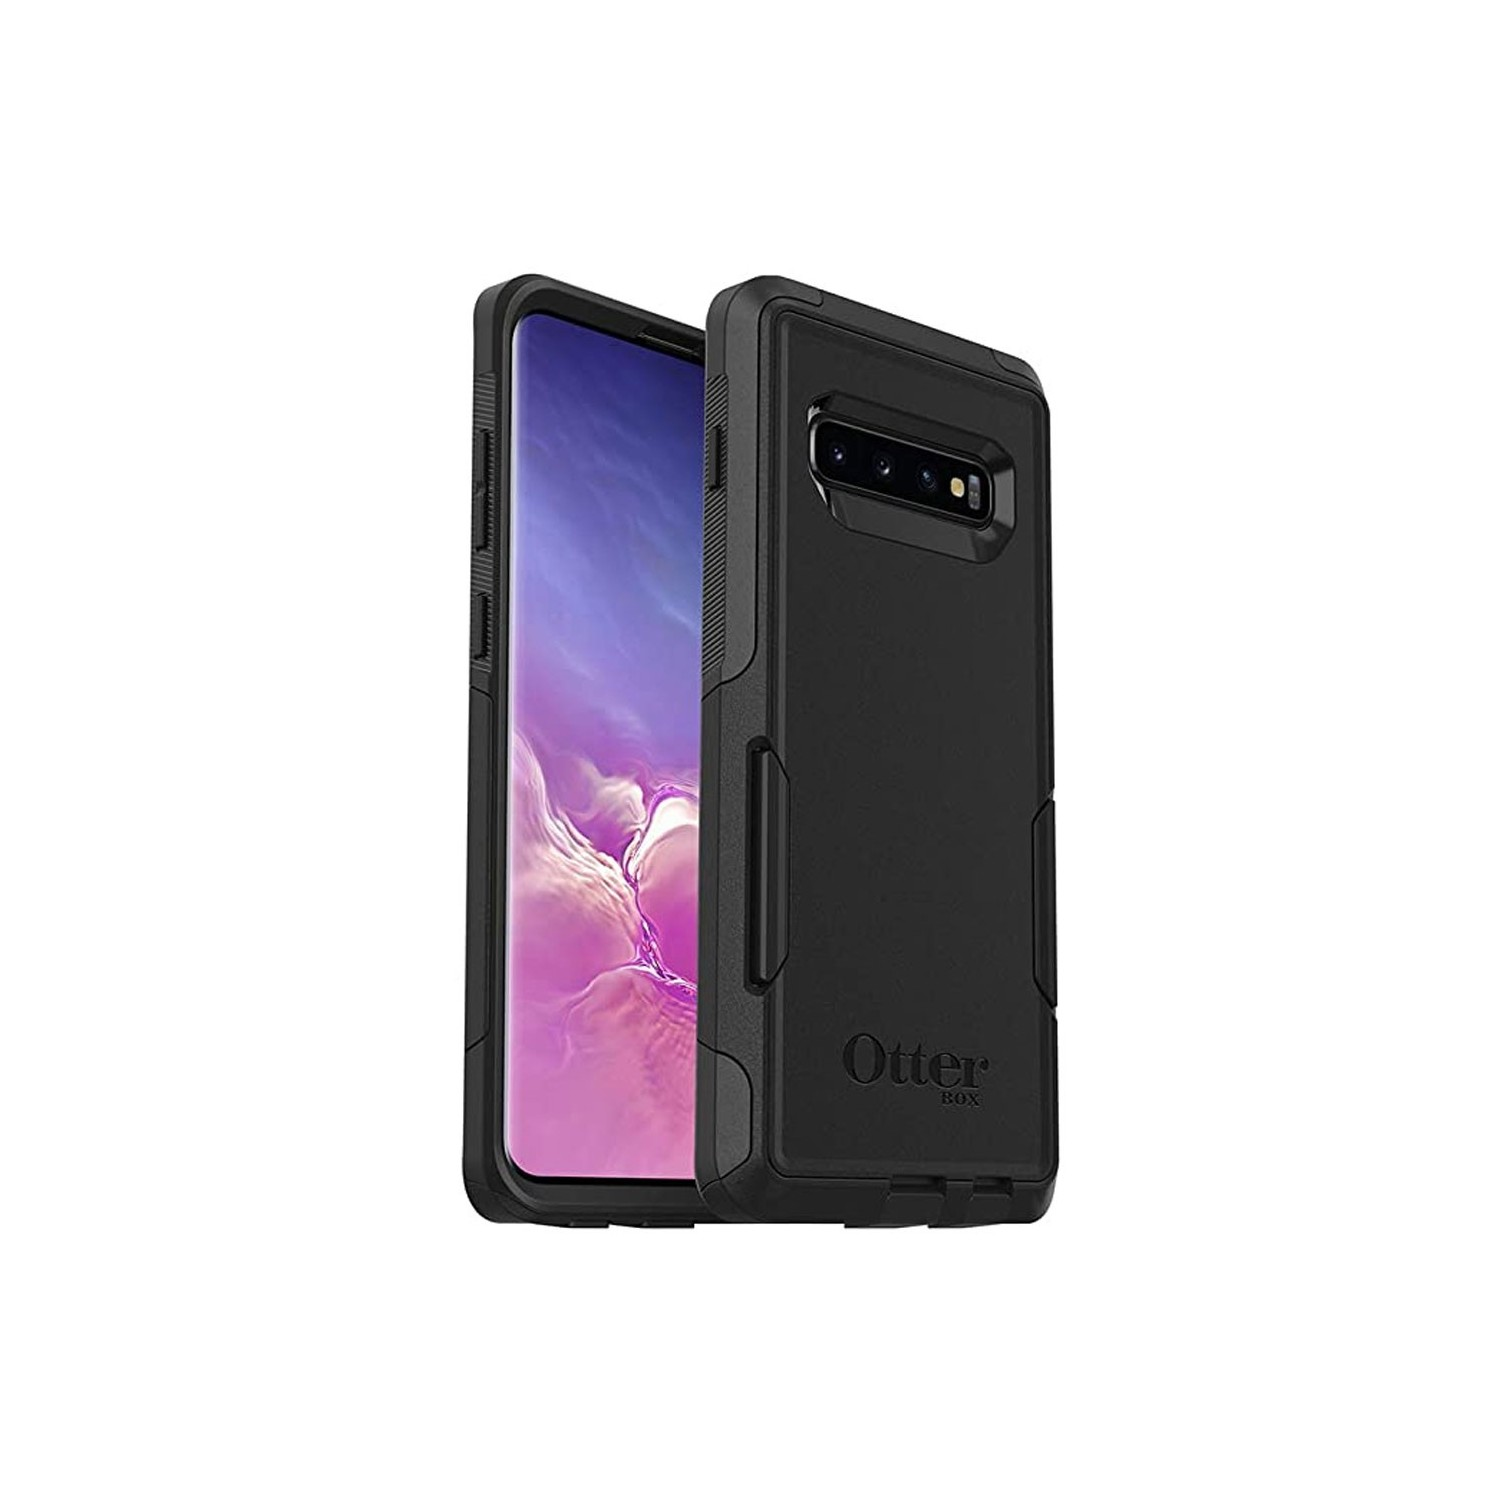 Case - OTTERBOX Commuter for Samsung S10 - Black